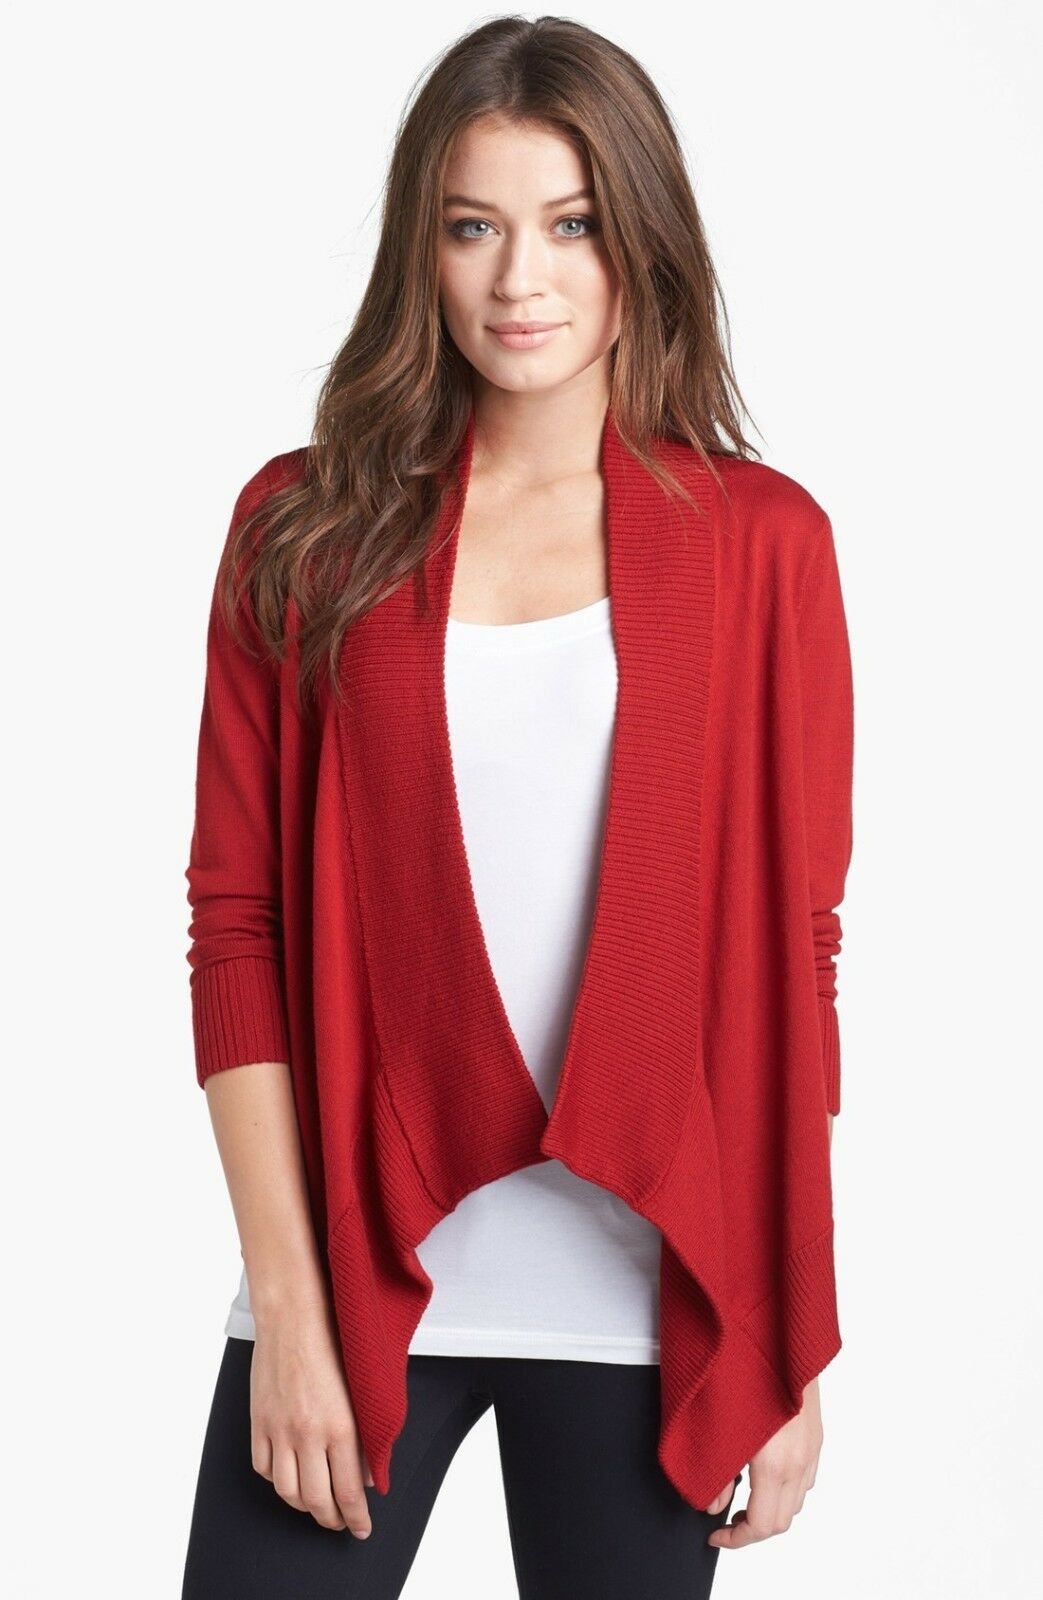 Eileen Fisher Laquer Red Angle Front Merino Wool Cardigan - MSRP